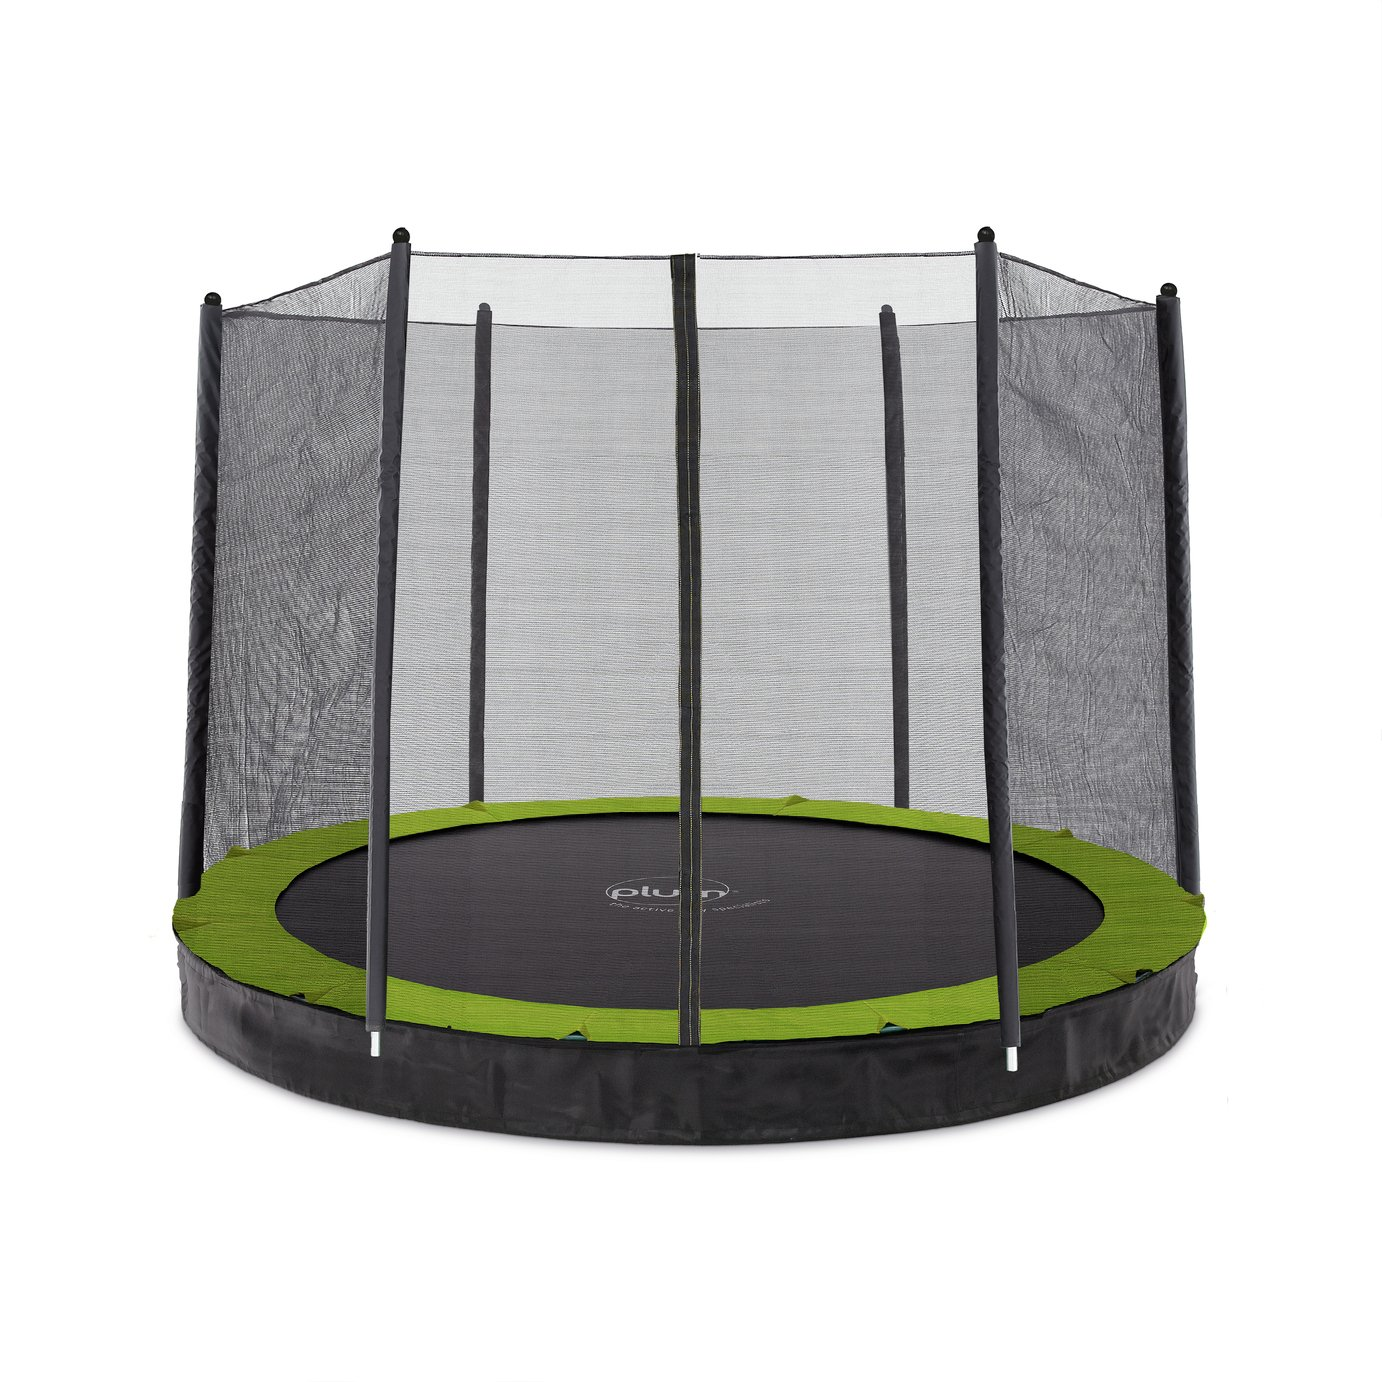 Plum 8ft In Ground Trampoline with Enclosure